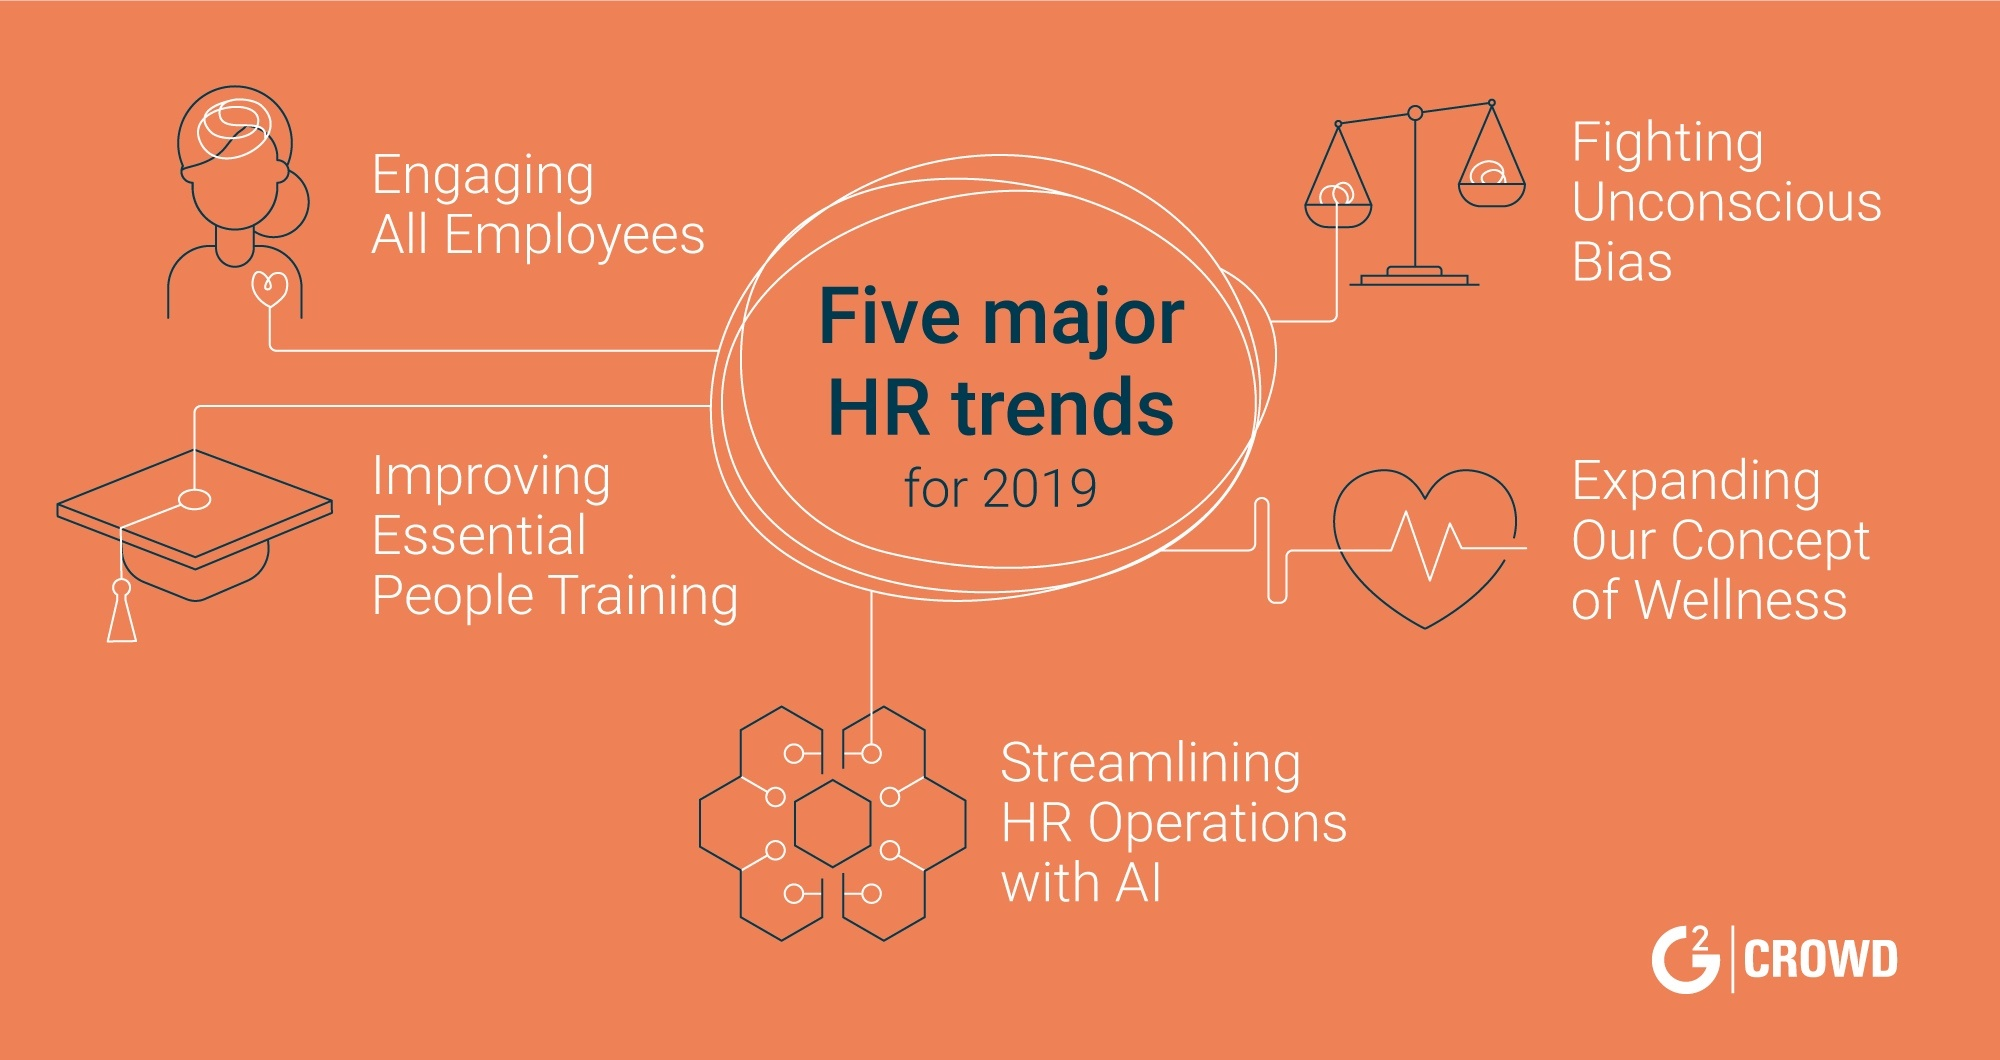 hight resolution of major hr trends for 2019